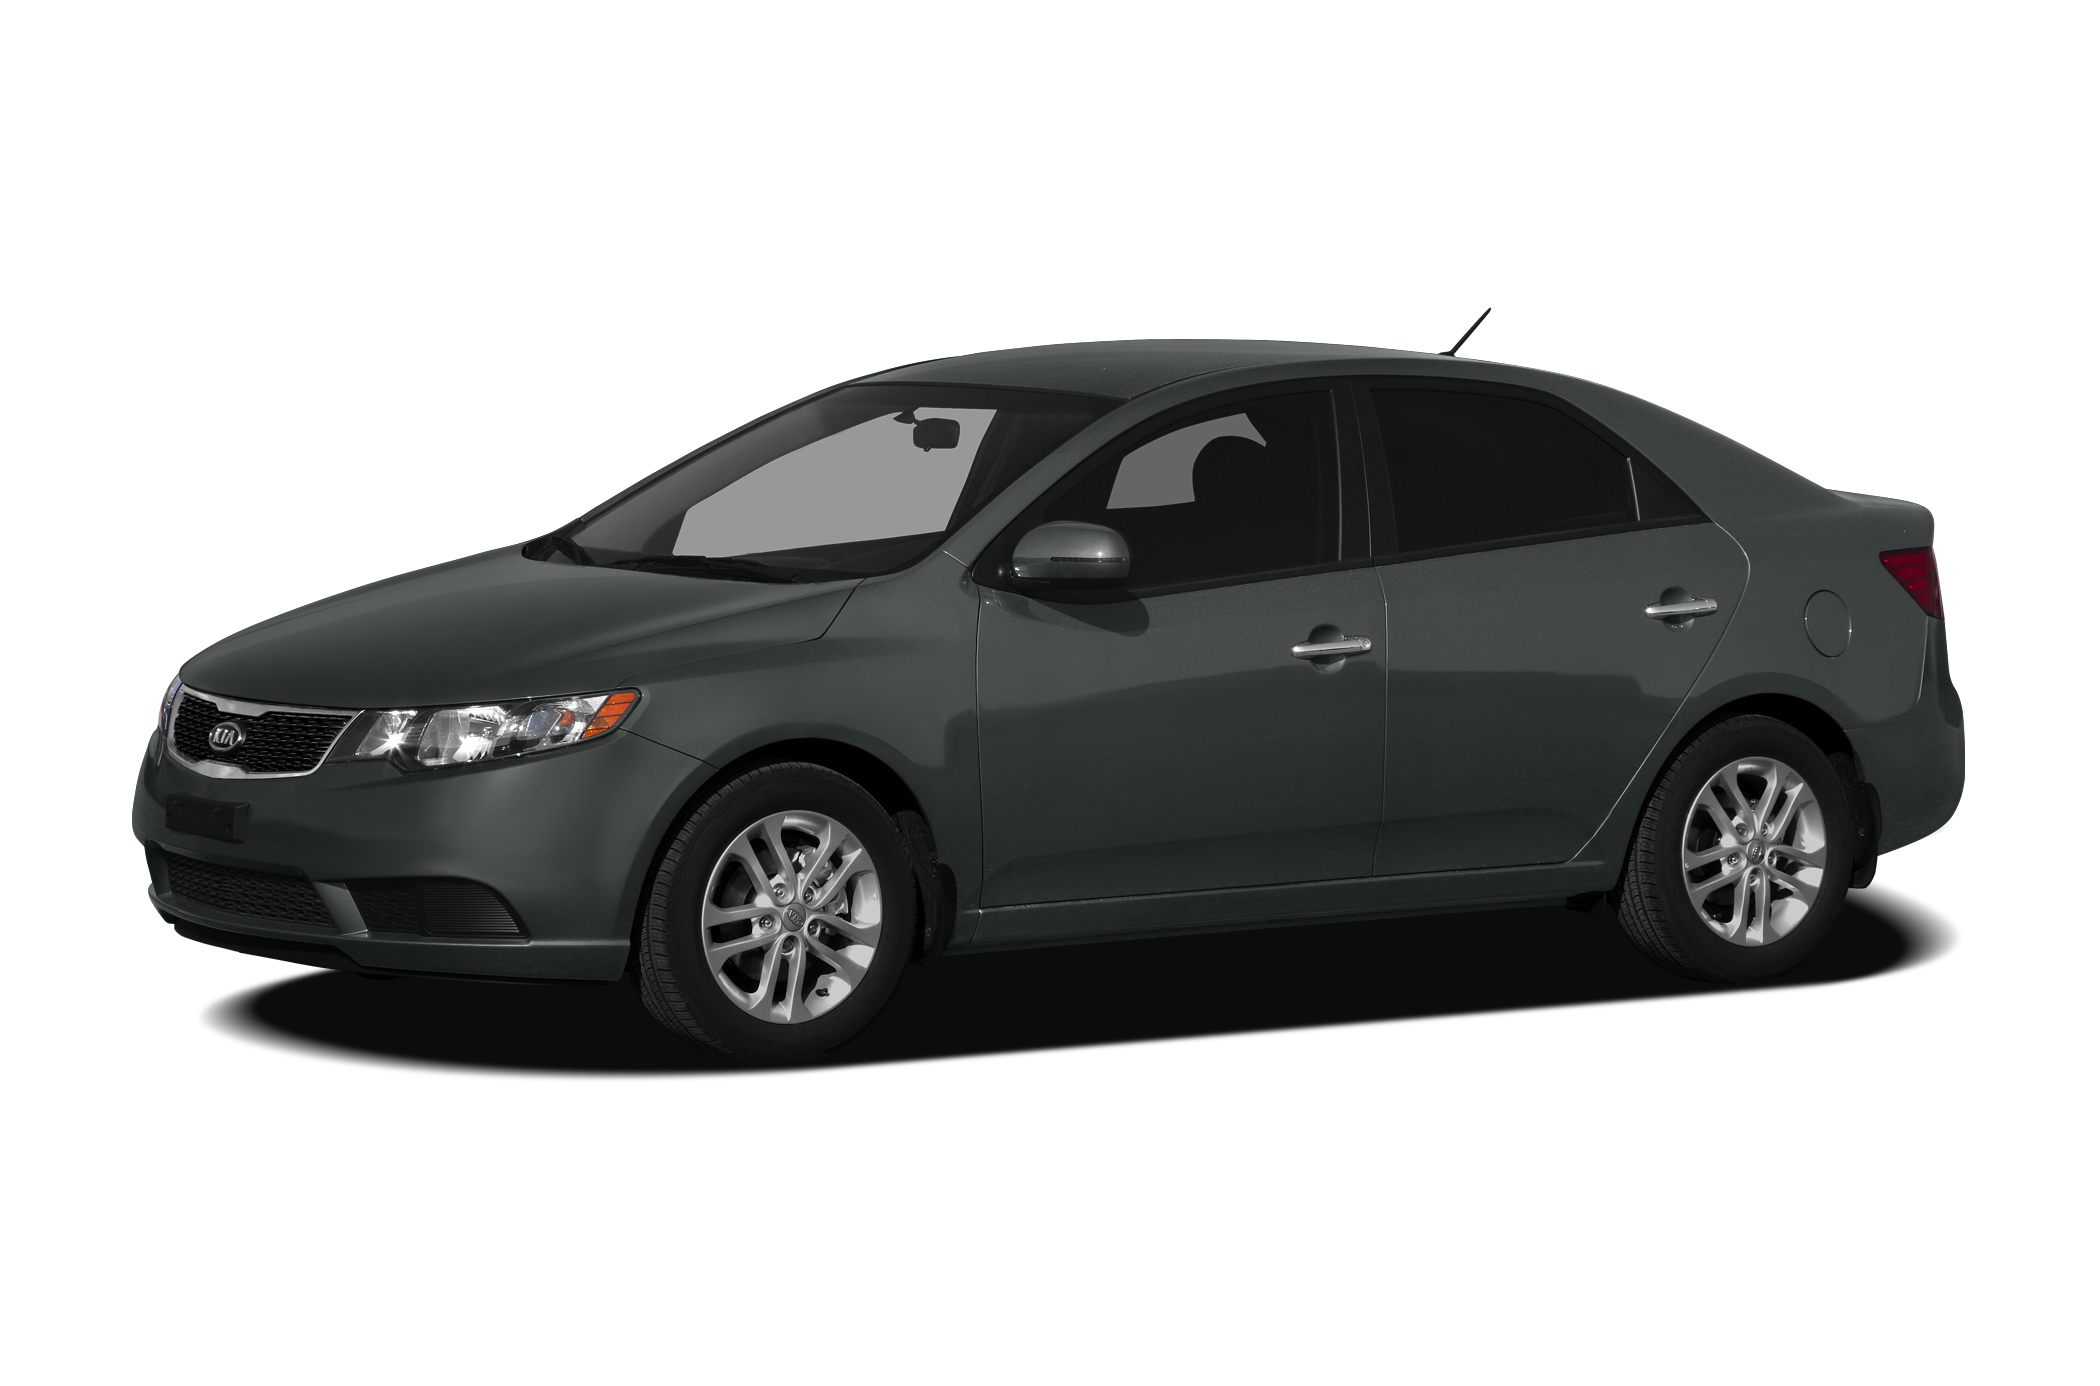 2011 Kia Forte EX Hatchback for sale in Aurora for $11,335 with 69,004 miles